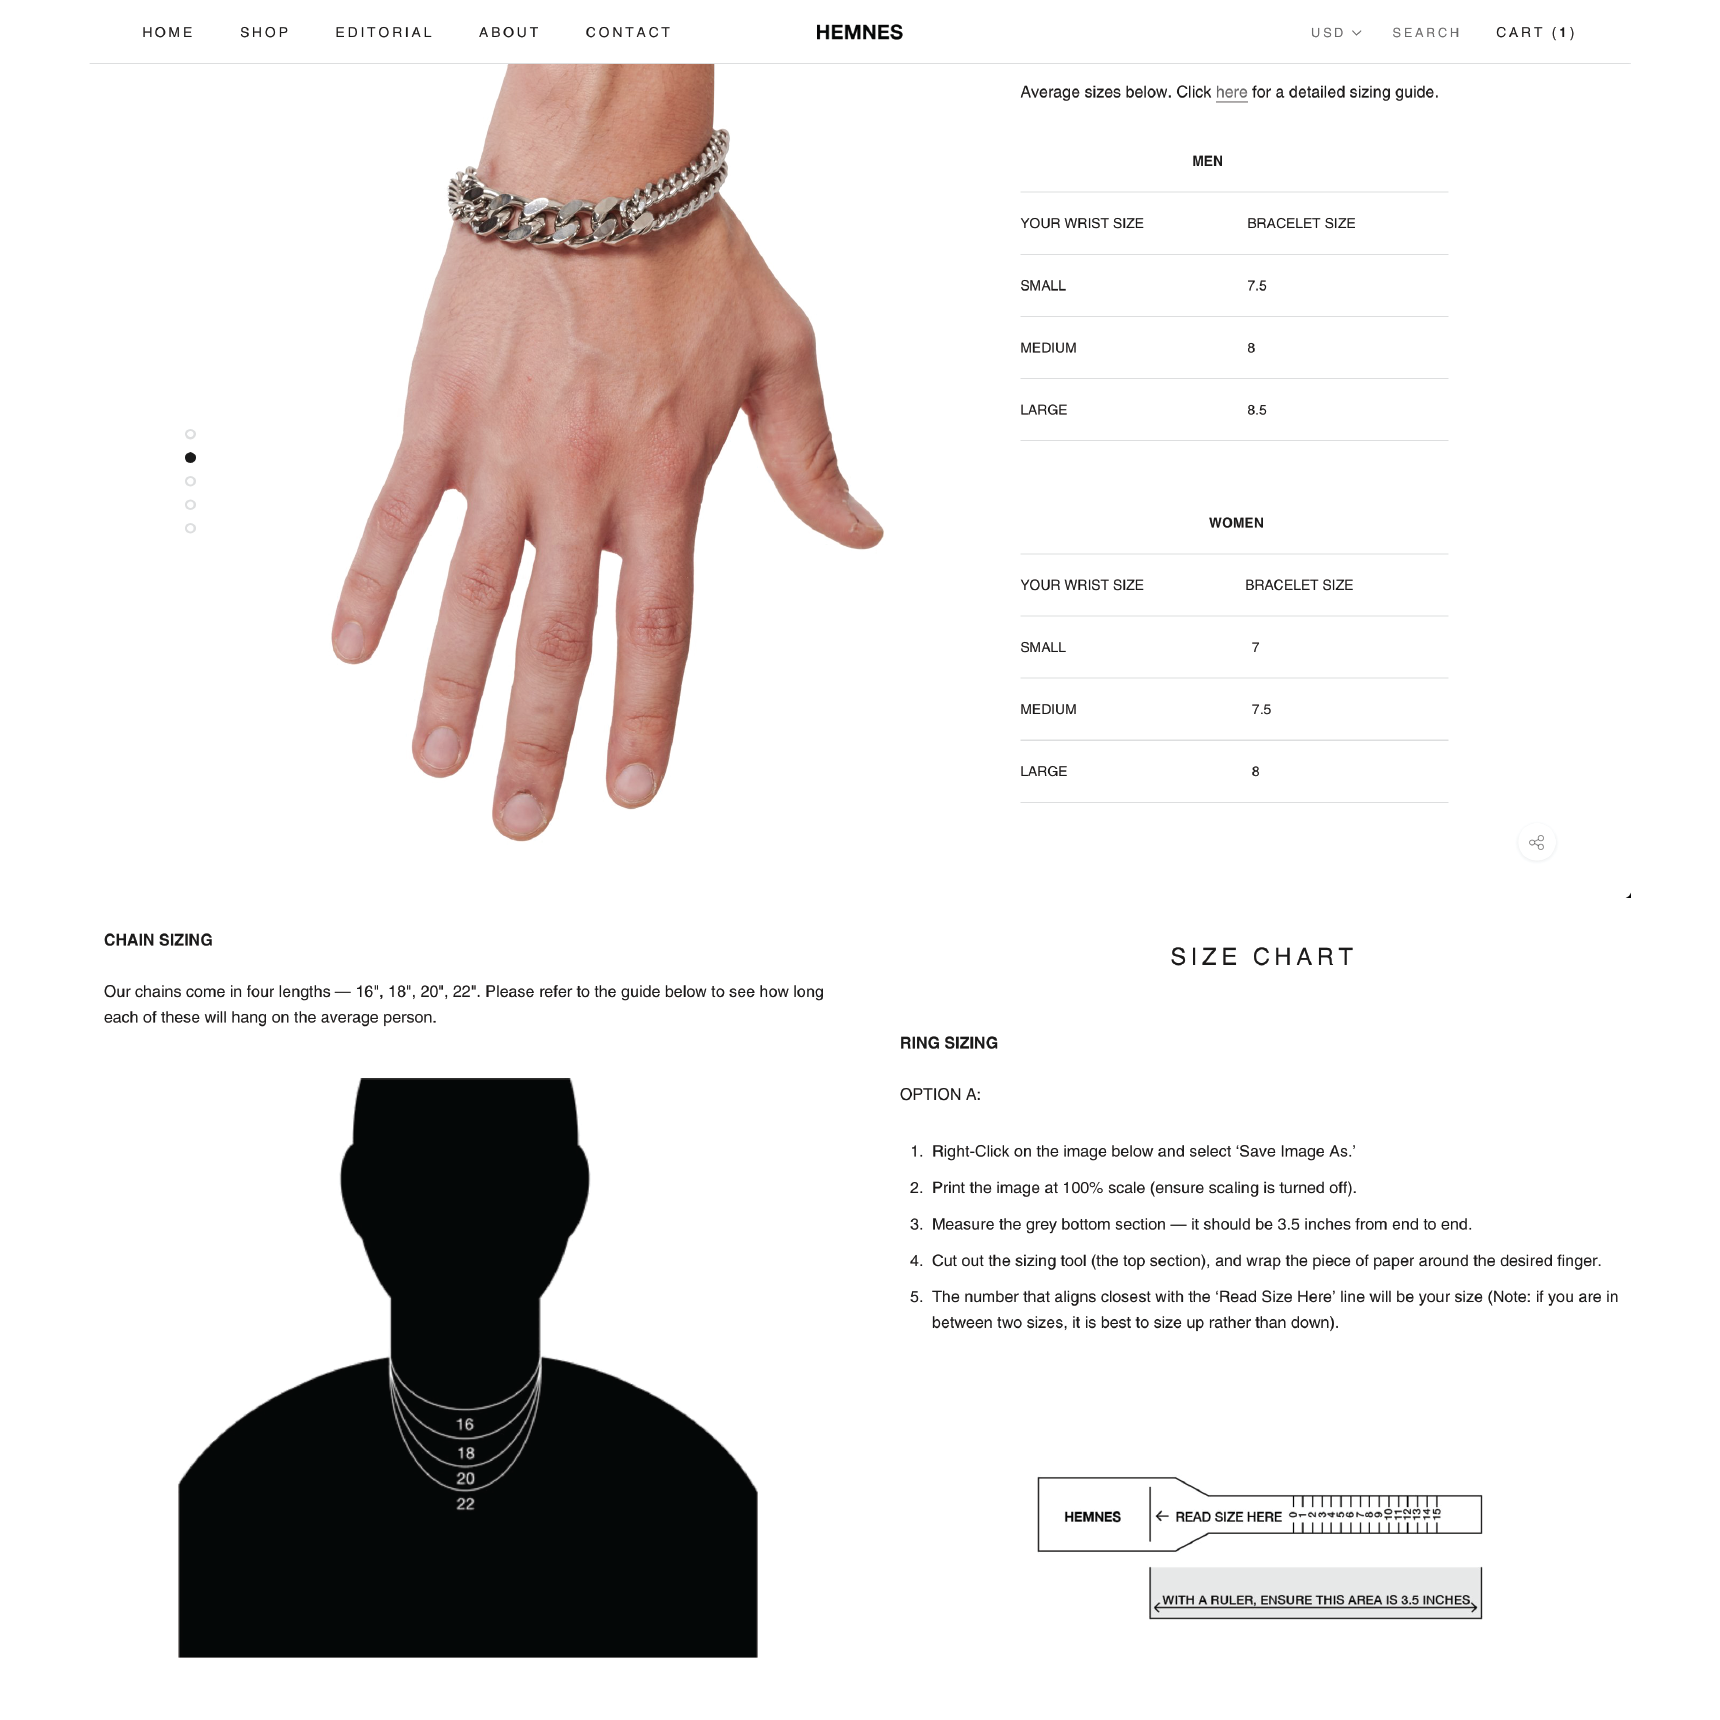 Hemnes.us customers can easily determine their ideal jewelry sizing using a unisex necklace size reference illustration, a printable ring sizing tool, and an average bracelet size chart for both men and women.